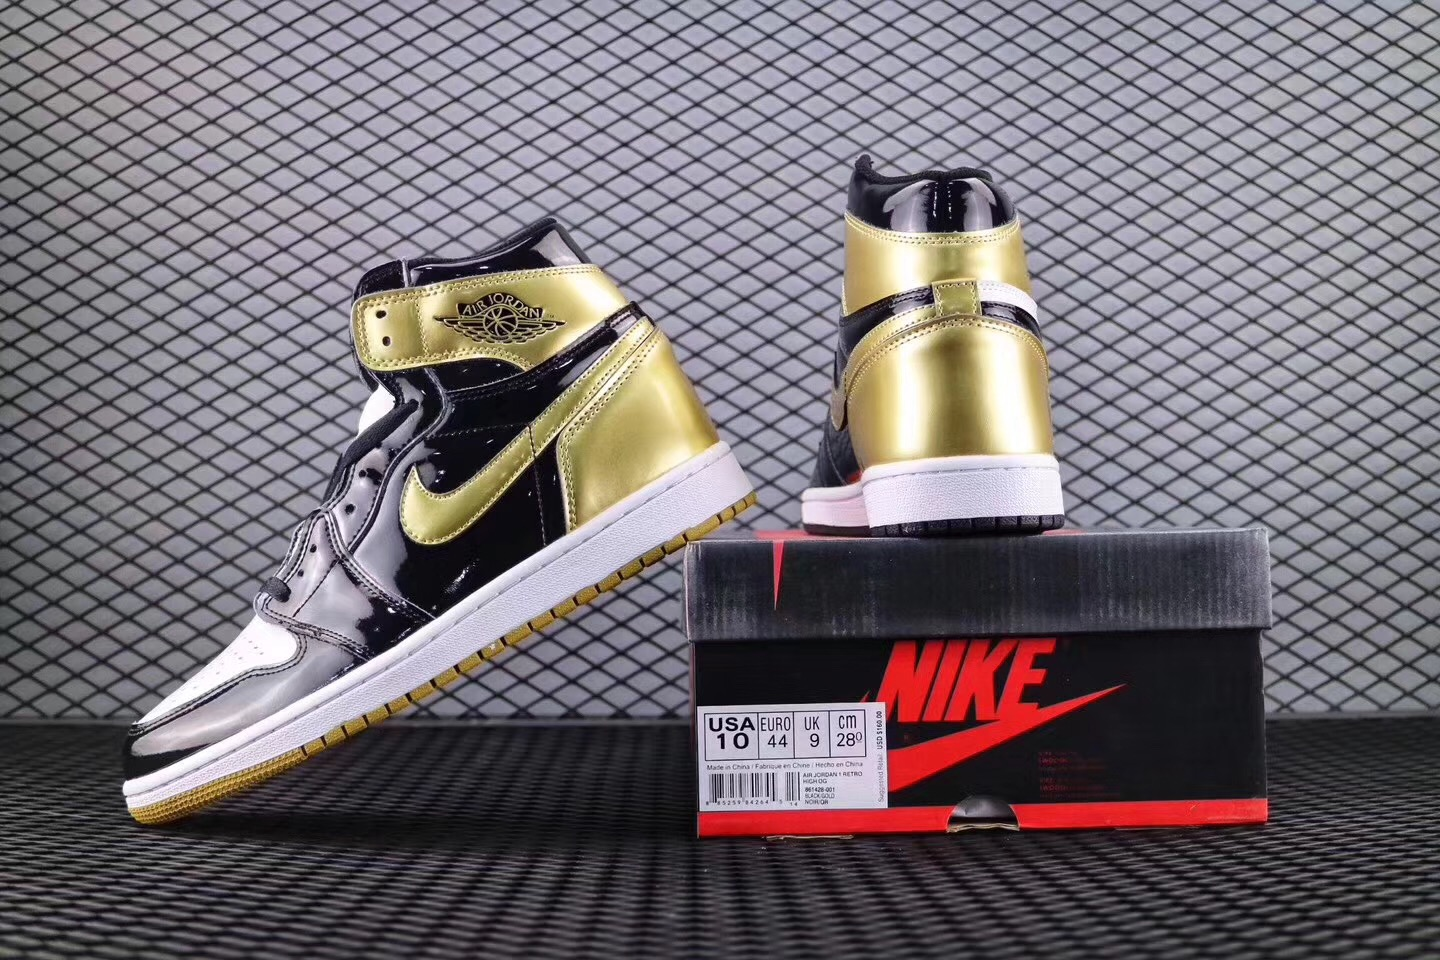 2017 Men Jordan 1 Top3 AJ1 ComplexCon Black Gold Shoes